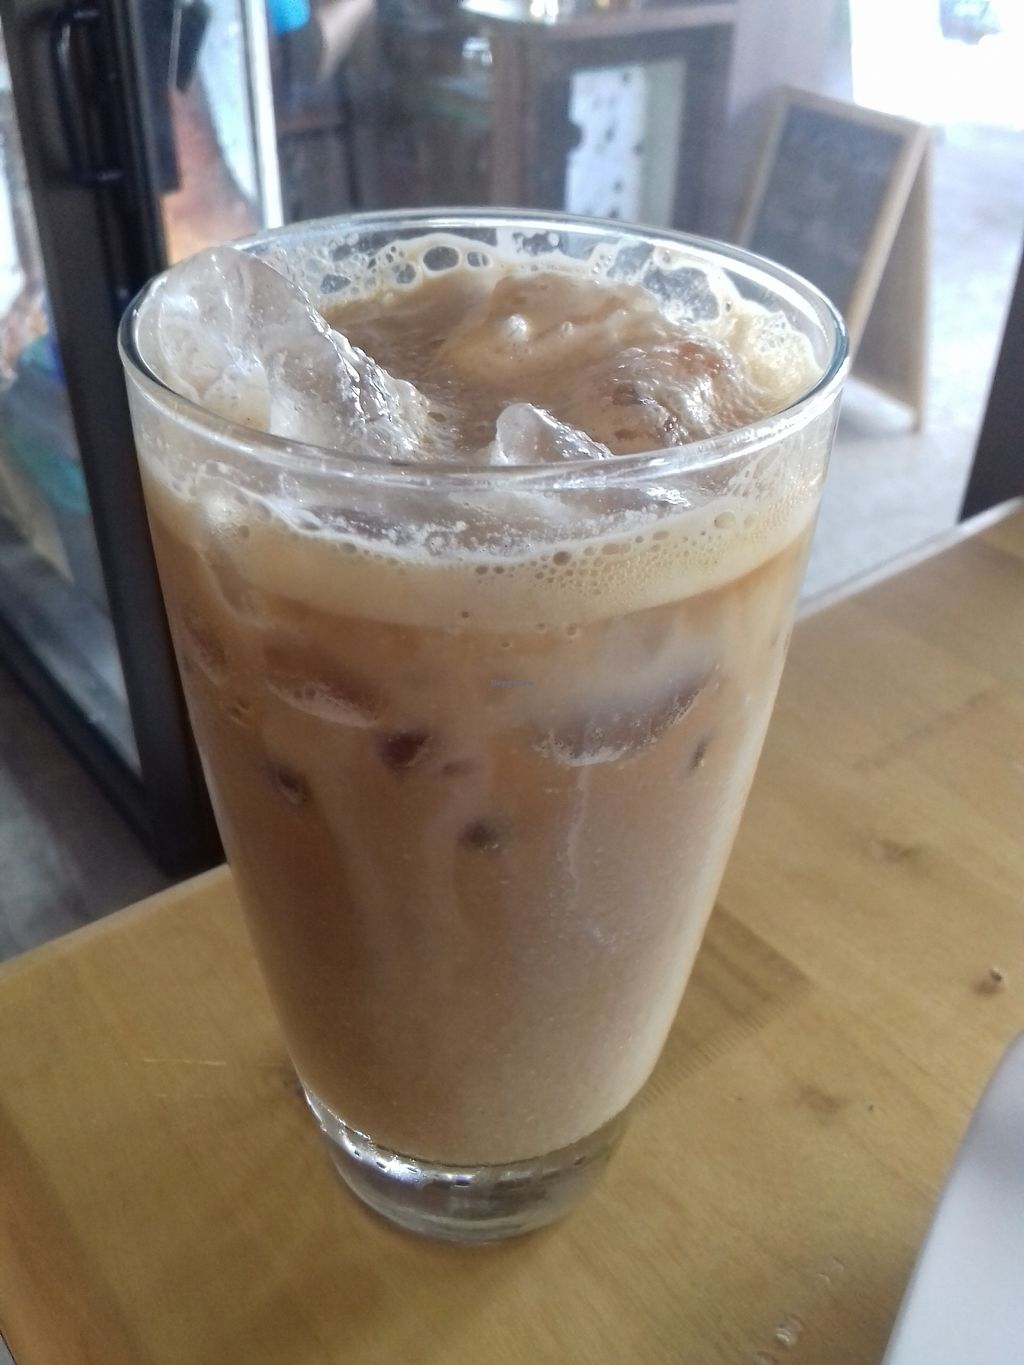 """Photo of Ticoffia  by <a href=""""/members/profile/Mima"""">Mima</a> <br/>Ice latte with soymilk <br/> January 13, 2018  - <a href='/contact/abuse/image/109357/345929'>Report</a>"""